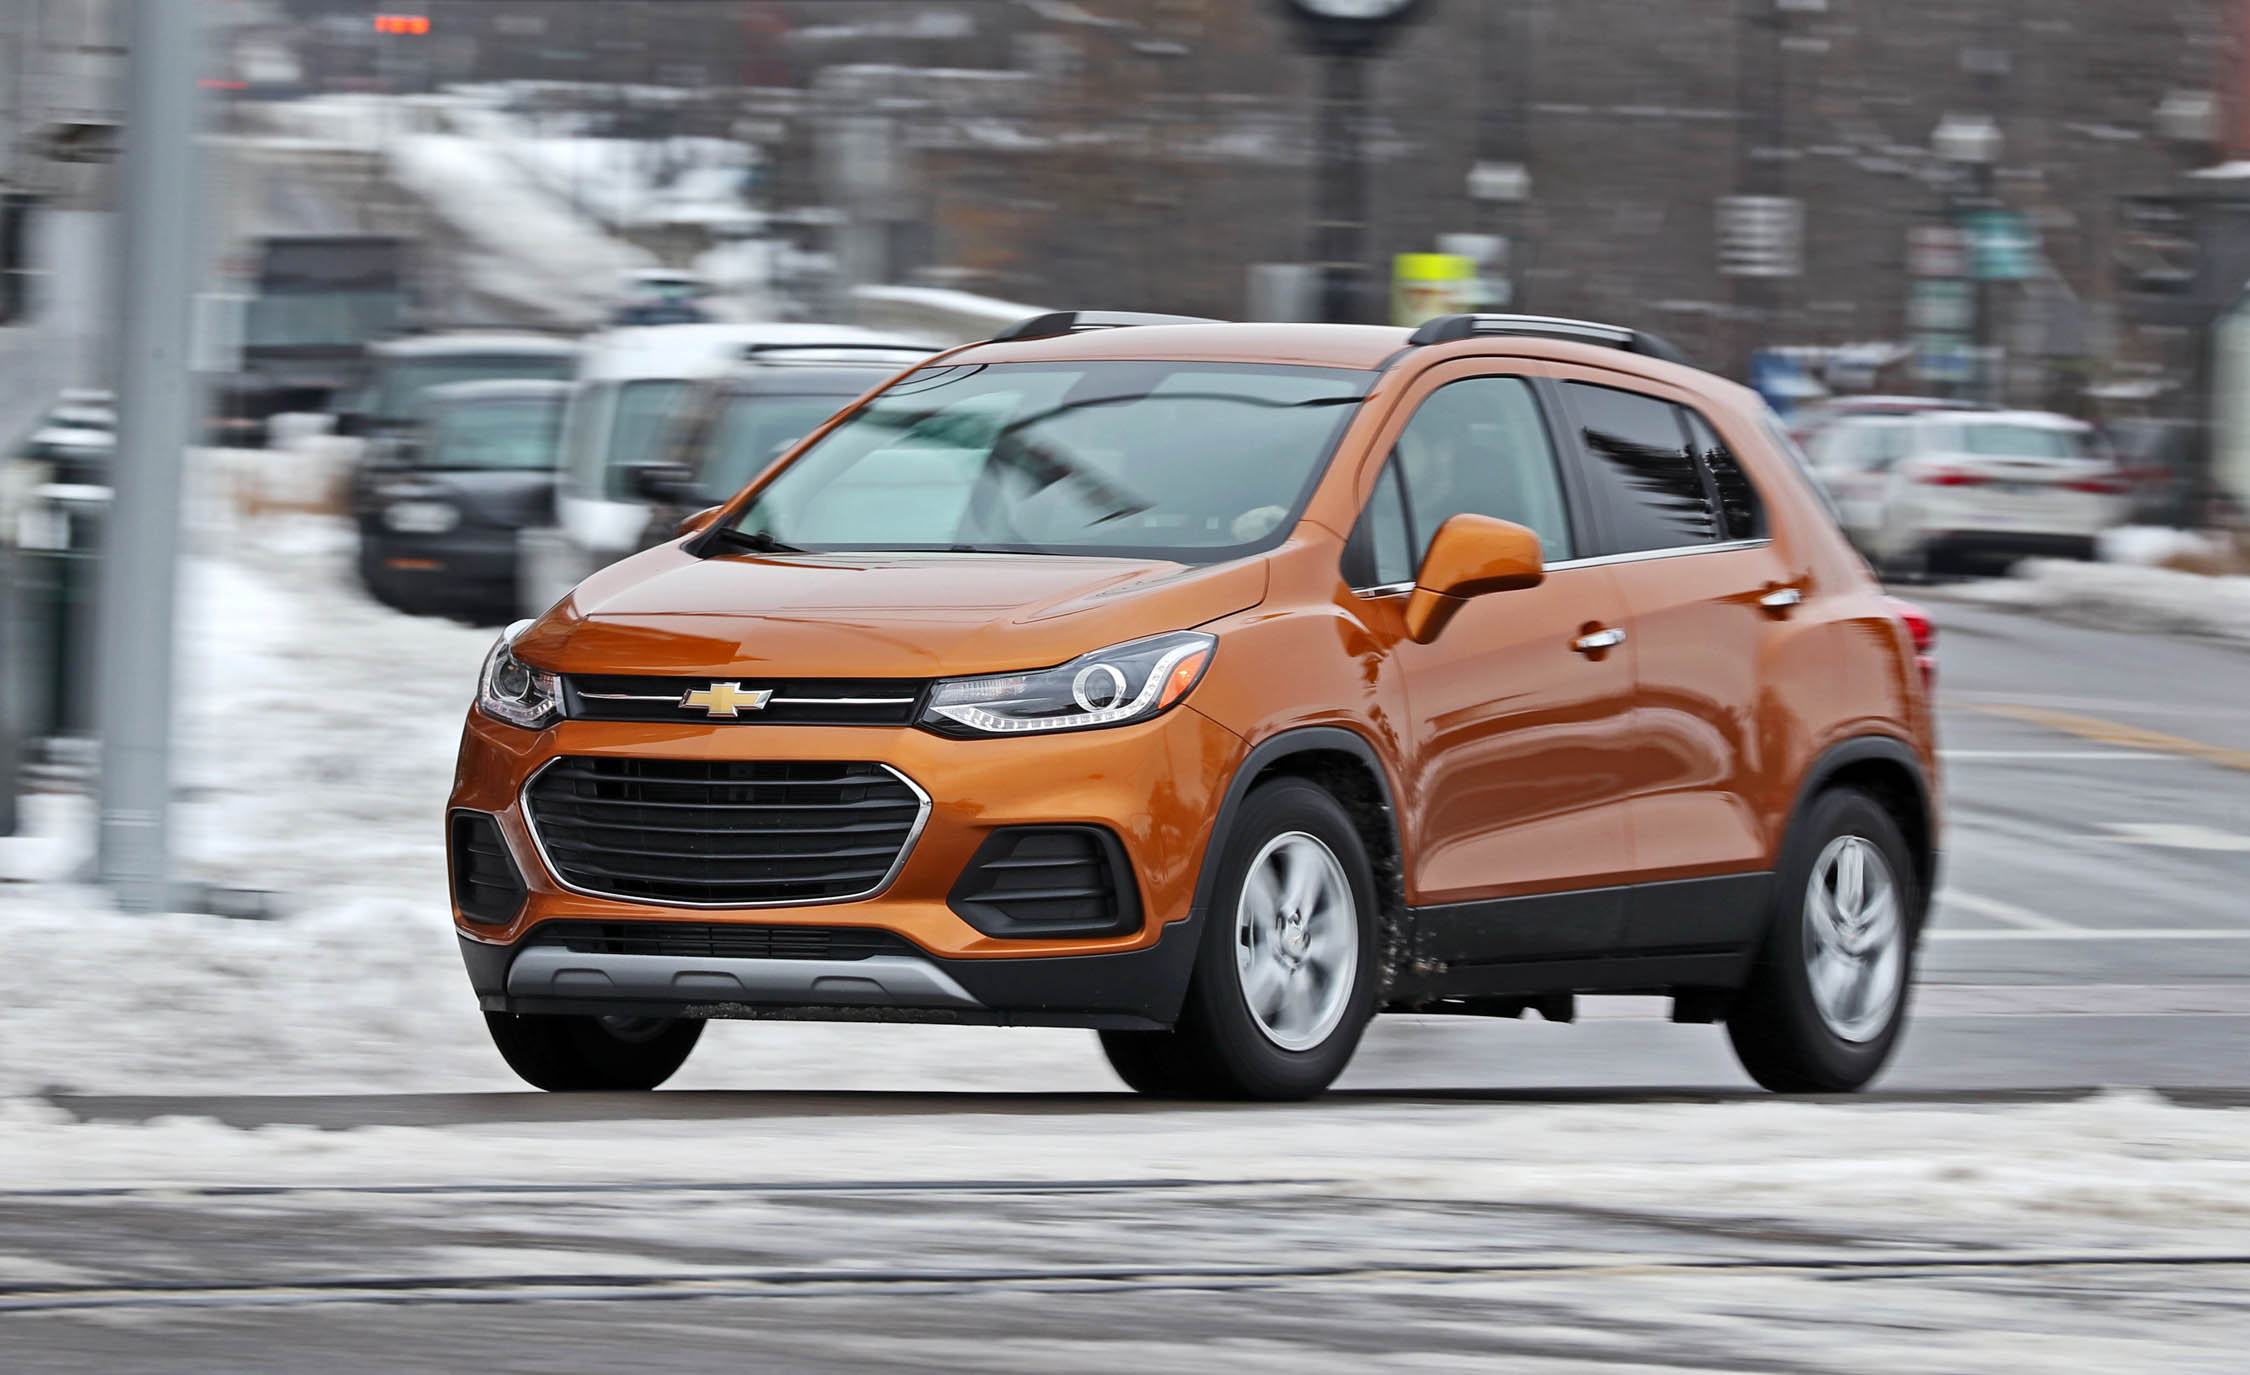 2017 Chevrolet Trax Test Drive Orange Metallic (Photo 7 of 47)